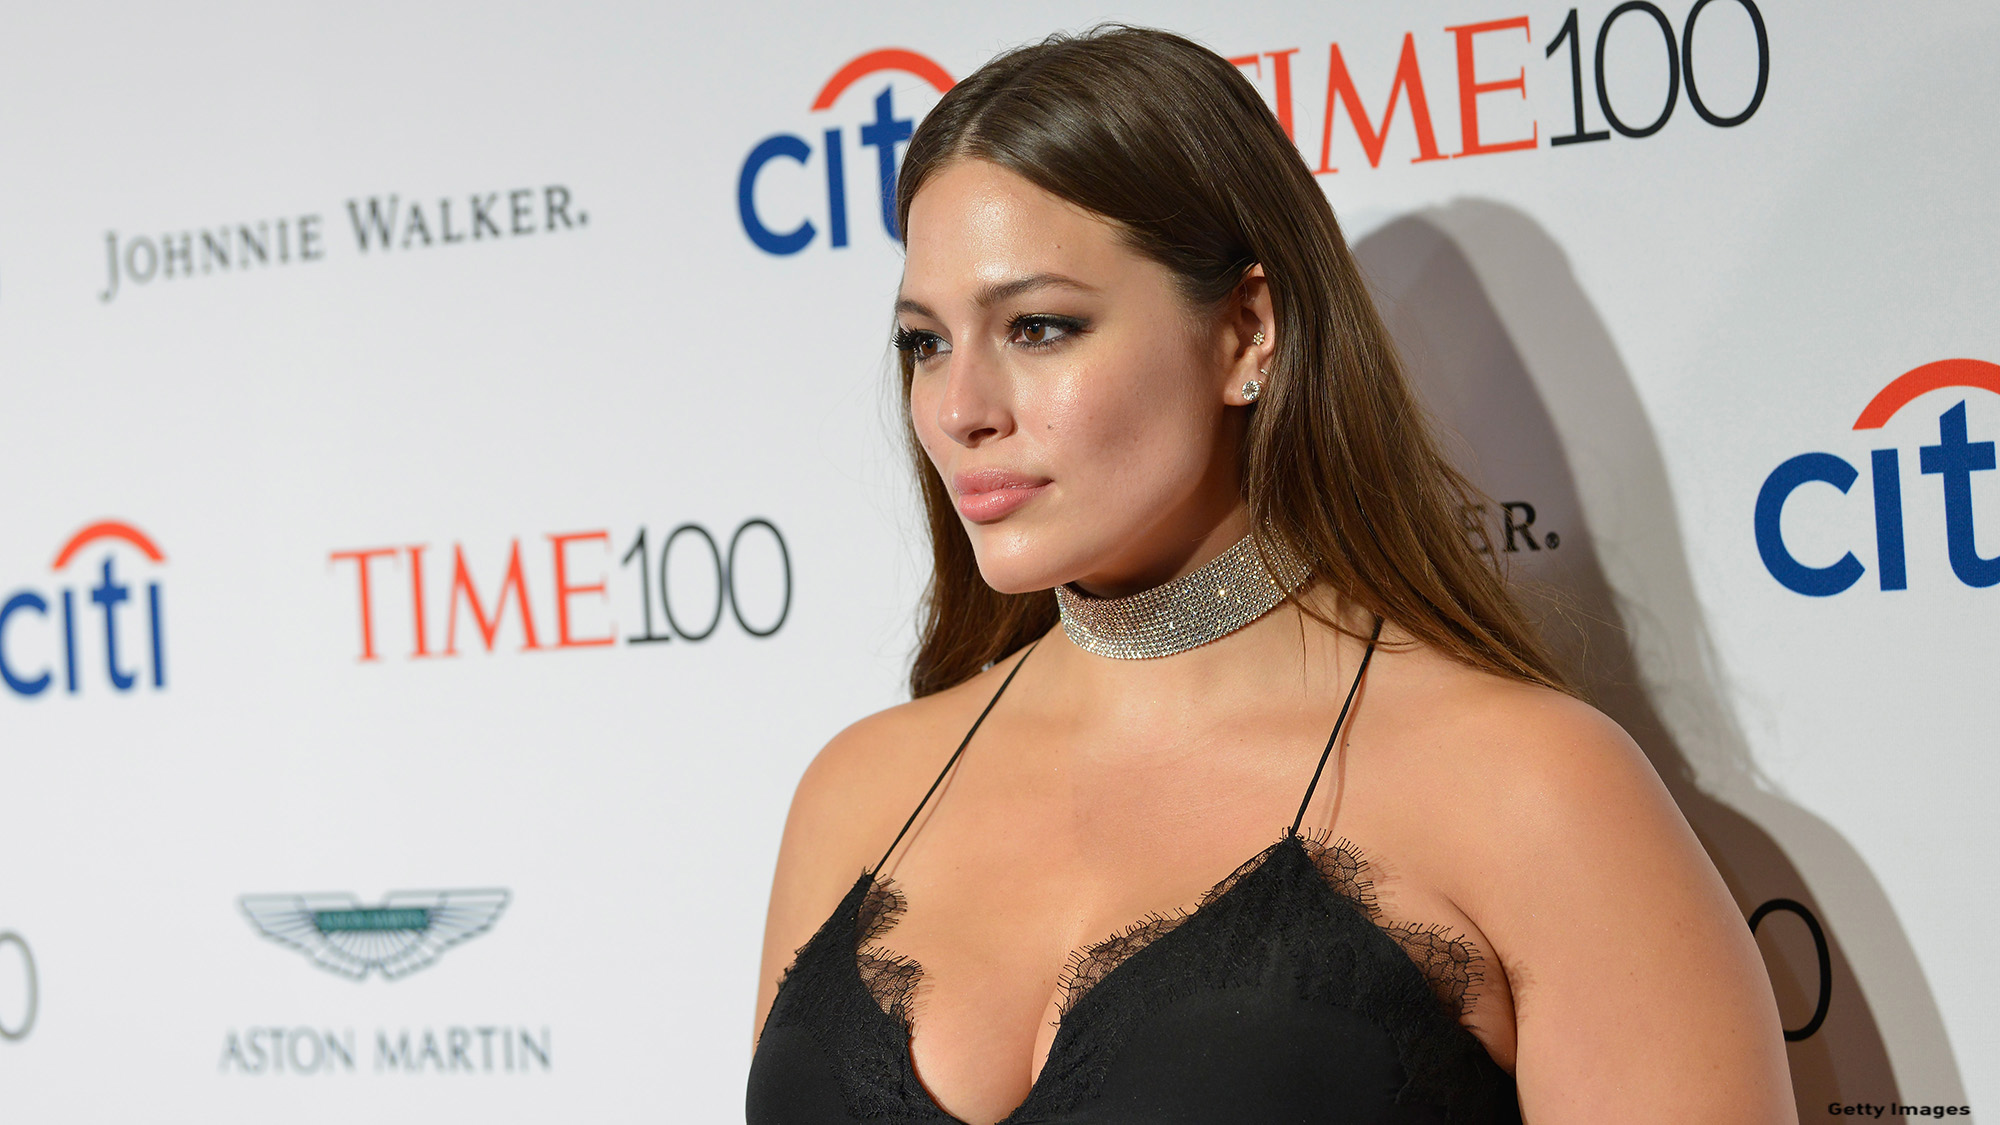 Ashley Graham: A New Model: What Confidence, Beauty, and Power Really Look Like